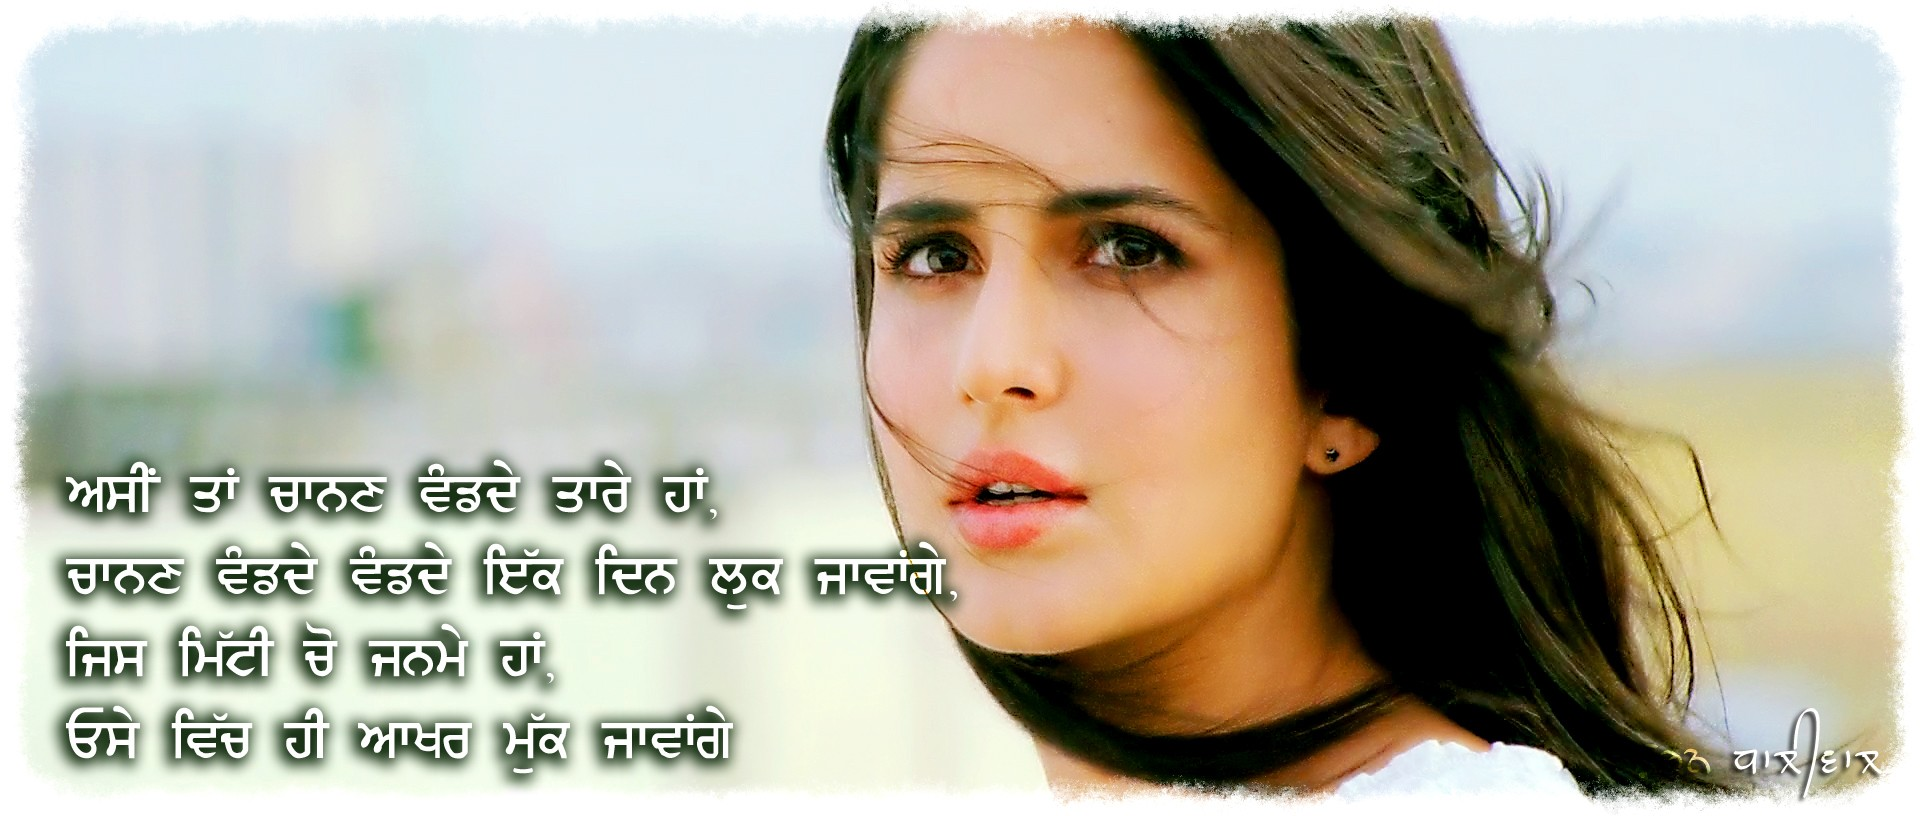 Punjabi sad pictures images graphics for facebook - Punjabi desi pic ...